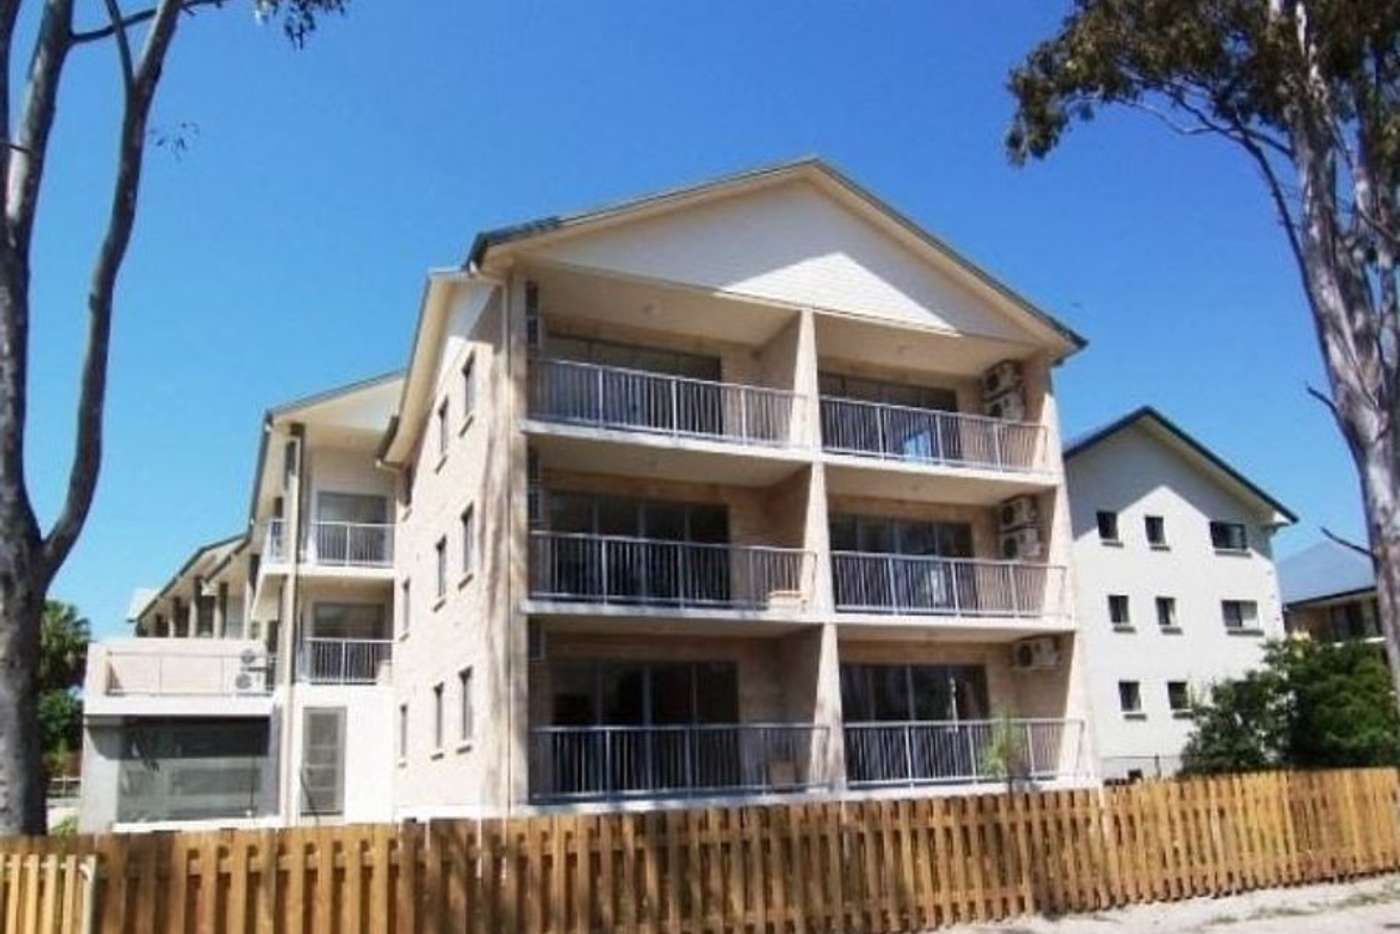 Main view of Homely unit listing, 24 /148 High Street, Southport QLD 4215